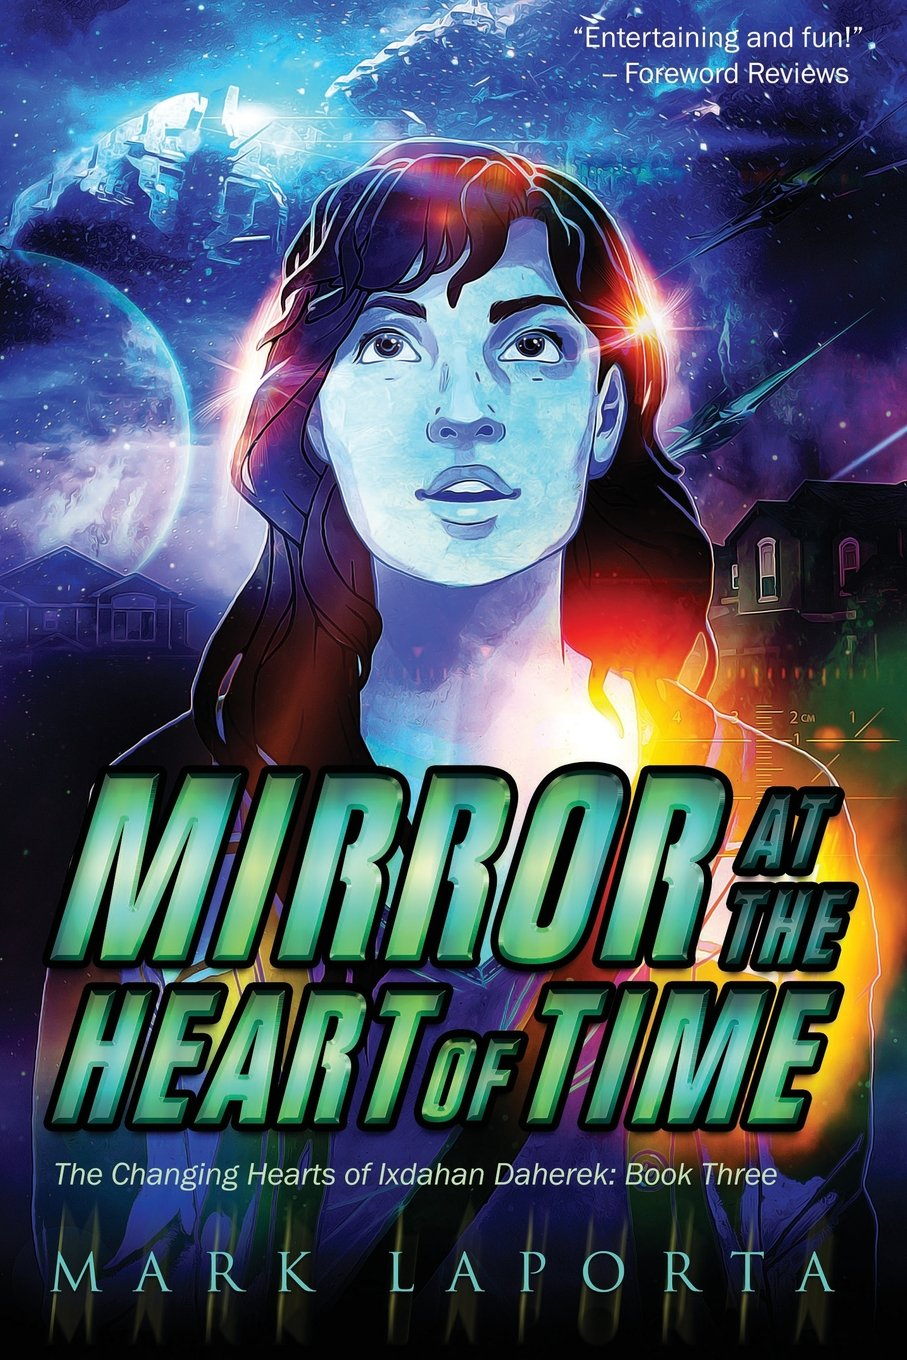 Read Online Mirror at the Heart of Time: Book 3 of The Changing Hearts of Ixdahan Daherek PDF